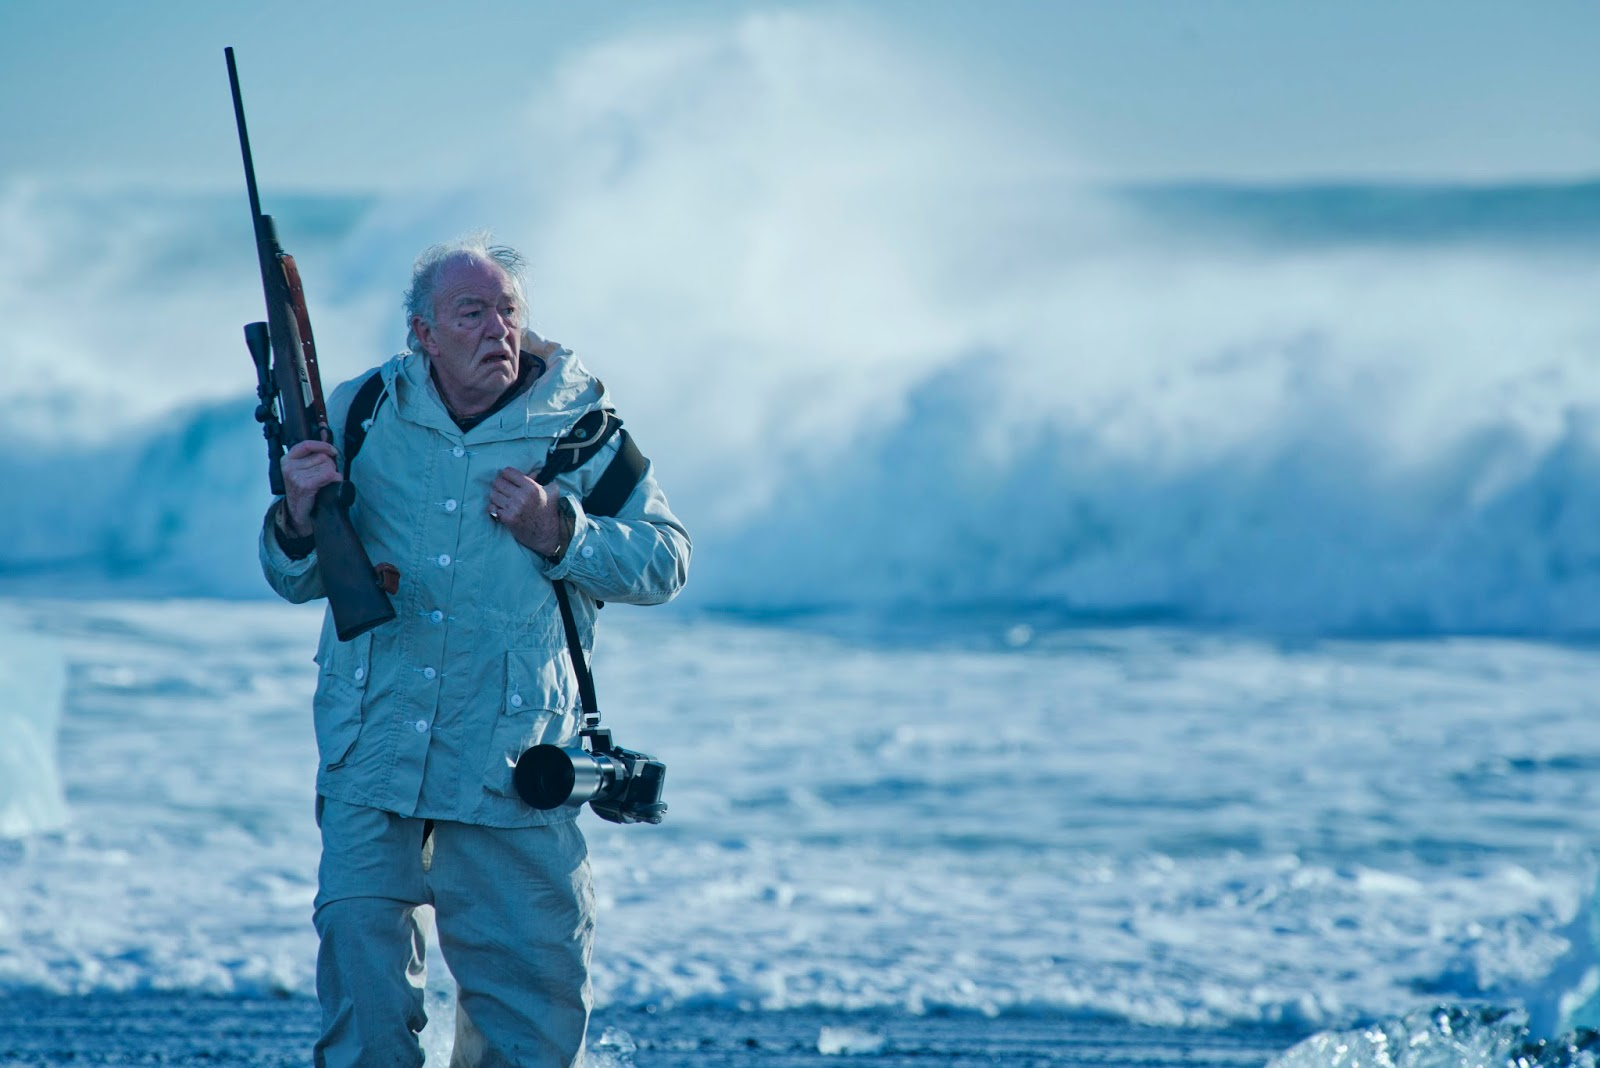 Michael Gambon as Henry Tyson in Fortitude